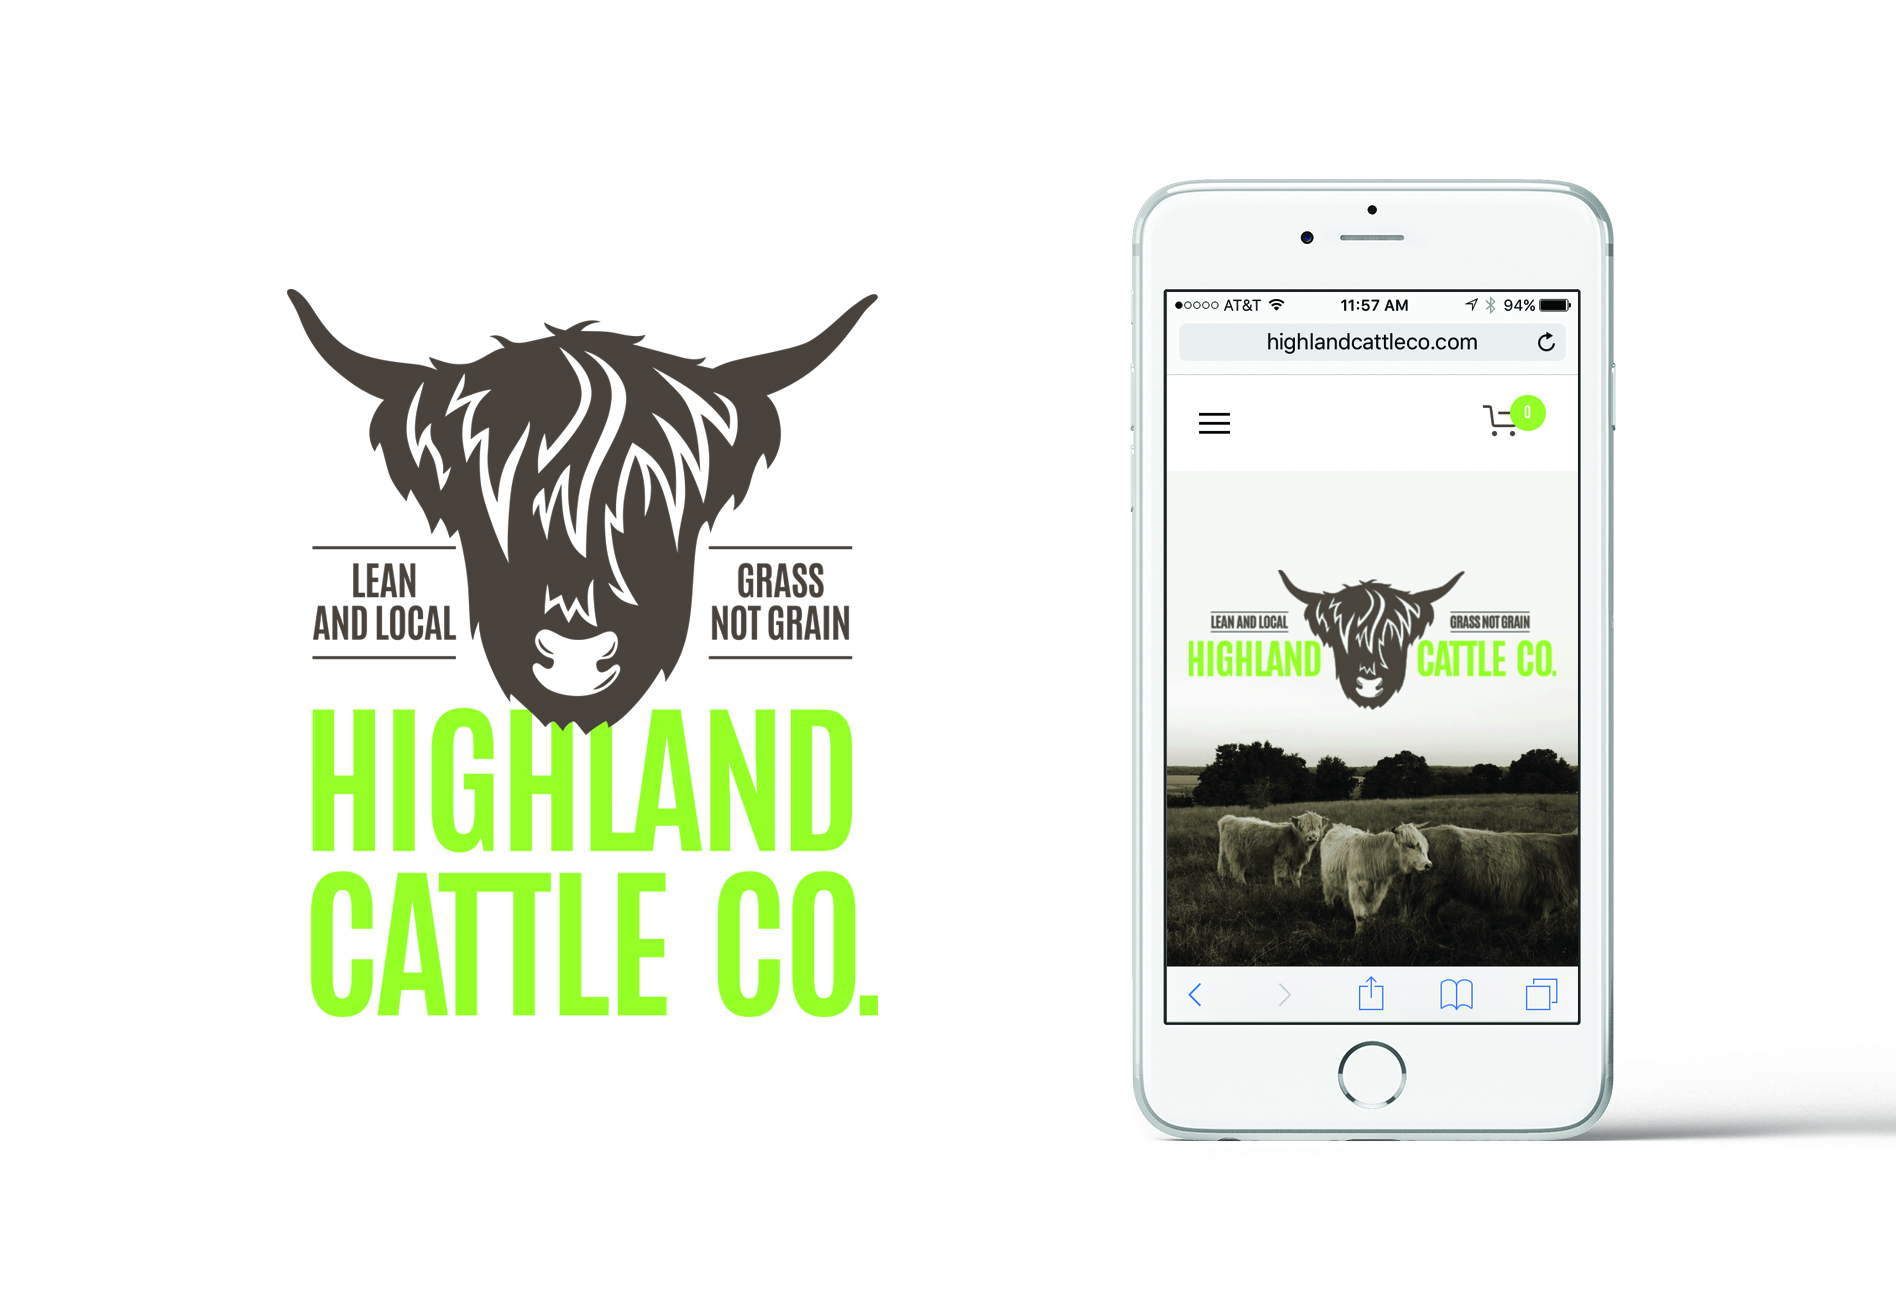 Highland Cattle Co.